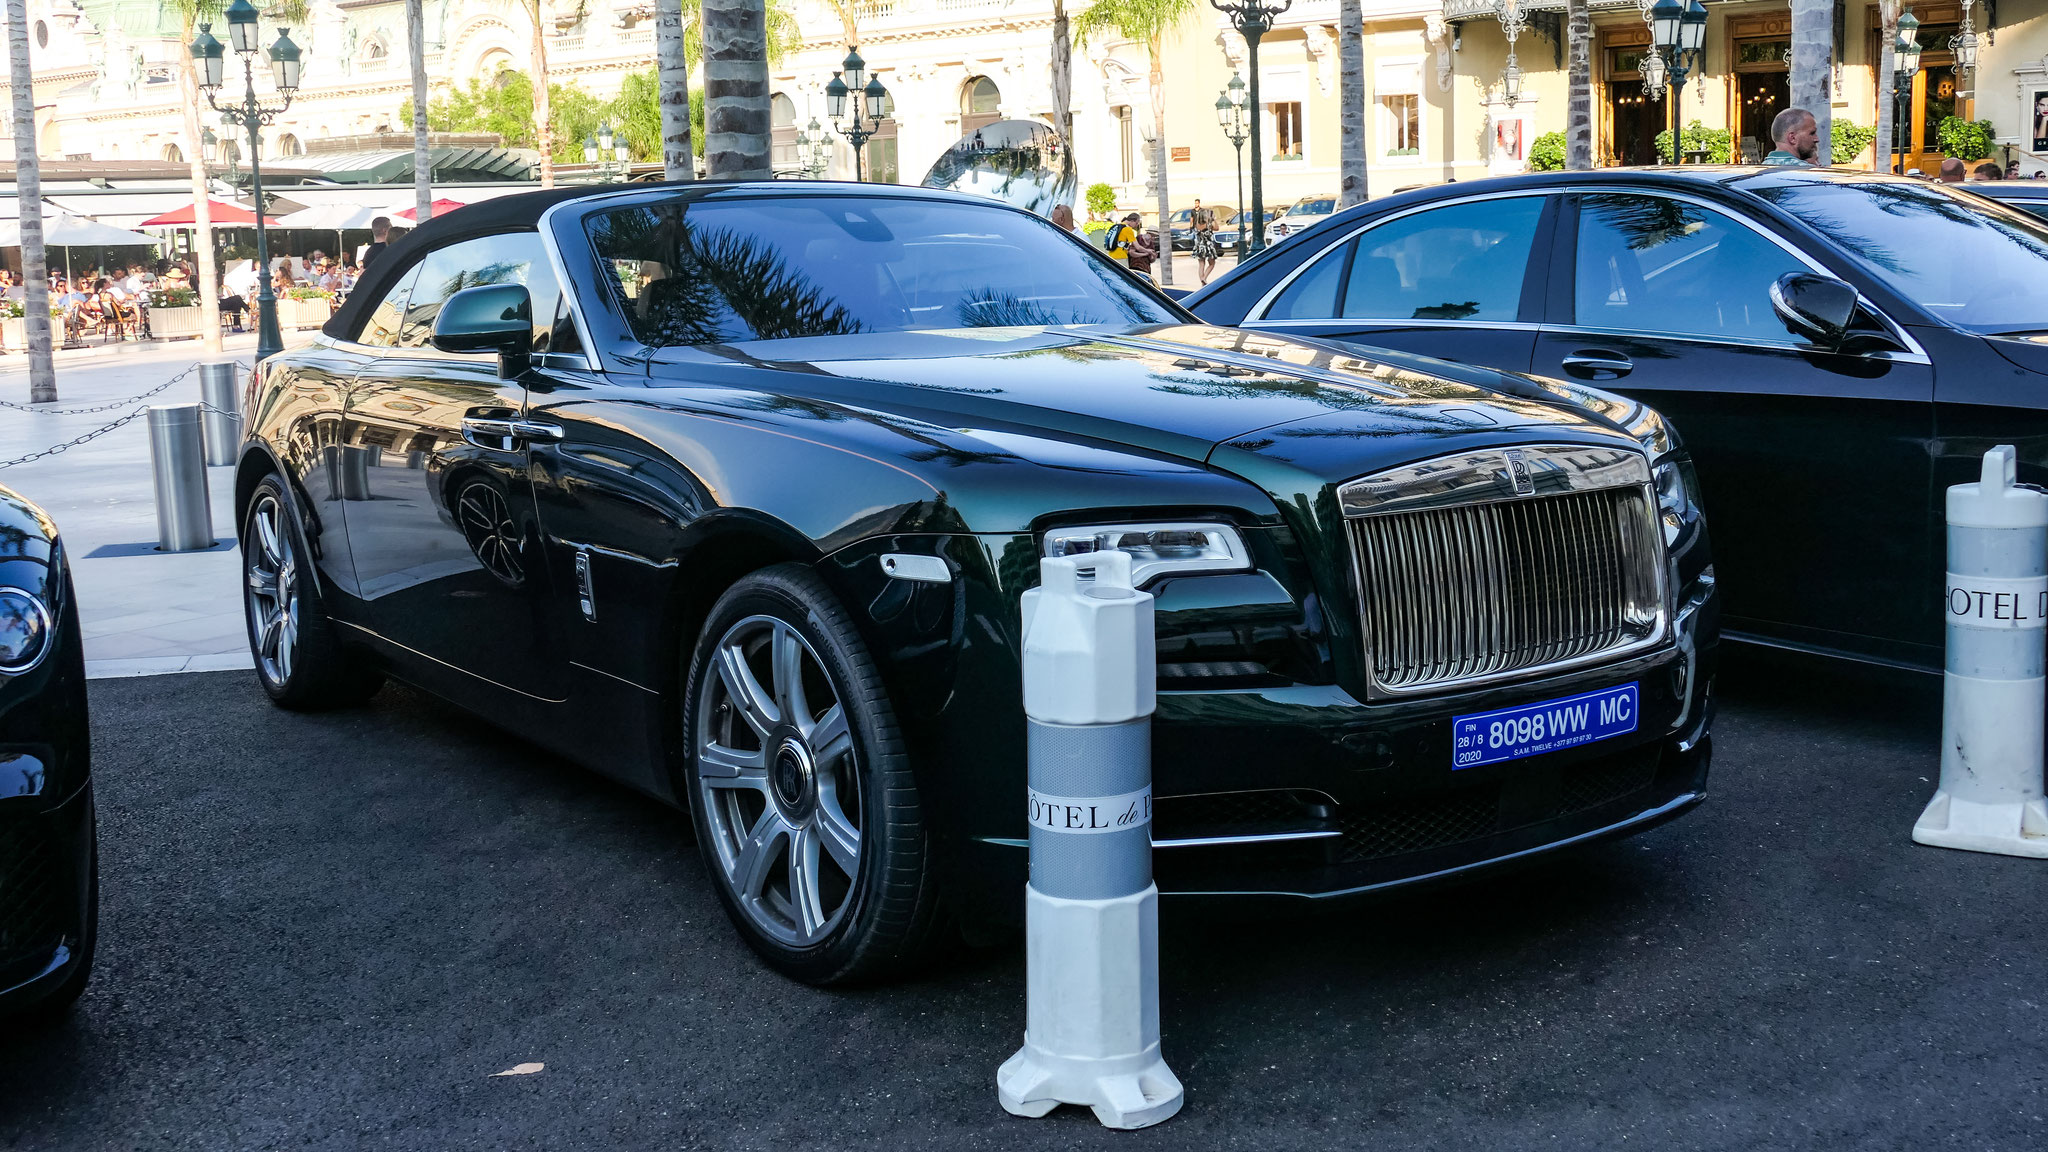 Rolls Royce Dawn - 8098-WW-MC (MC)